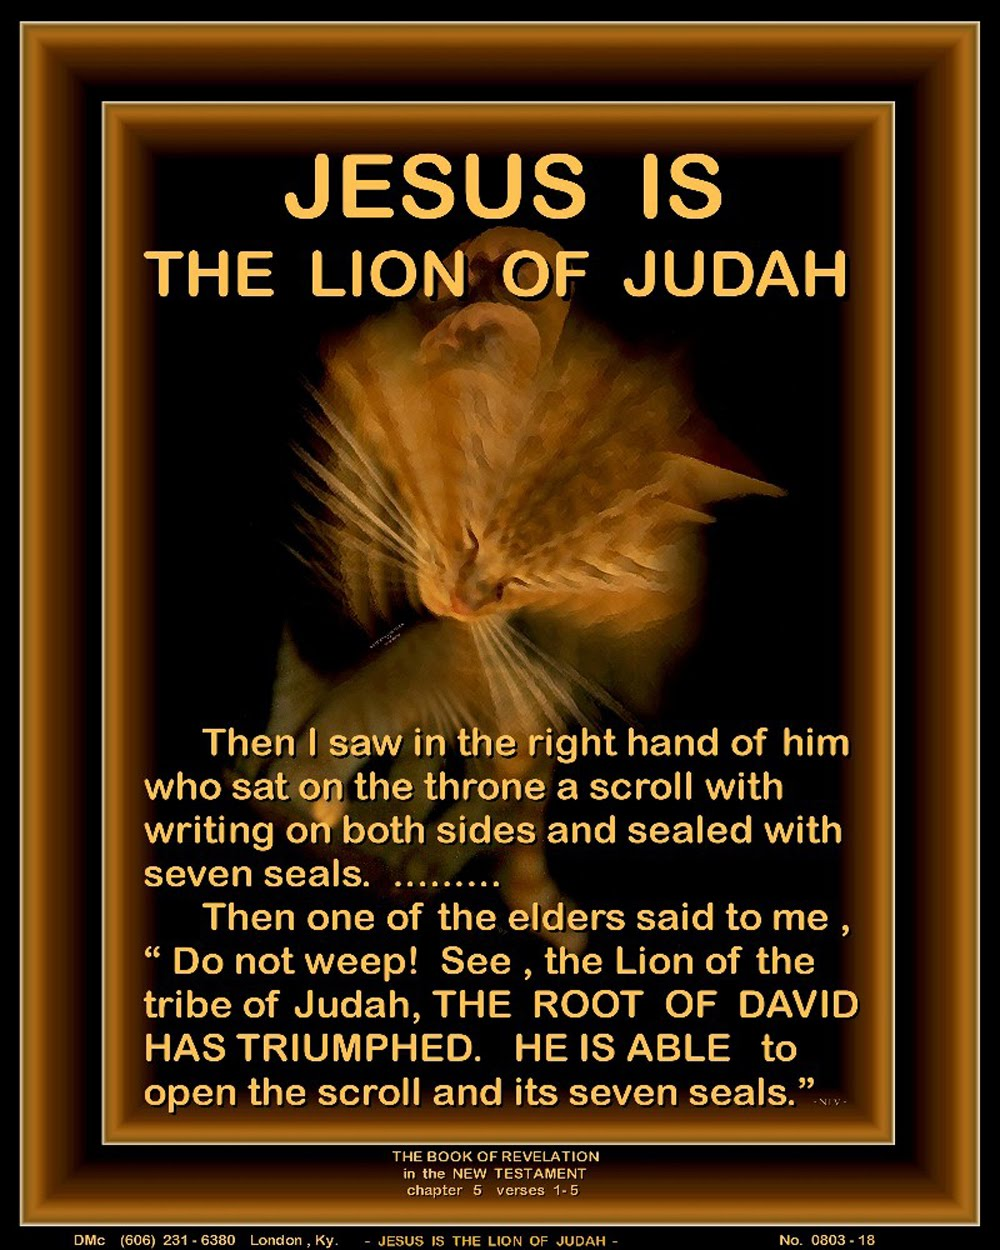 JESUS IS THE LION OF JUDAH